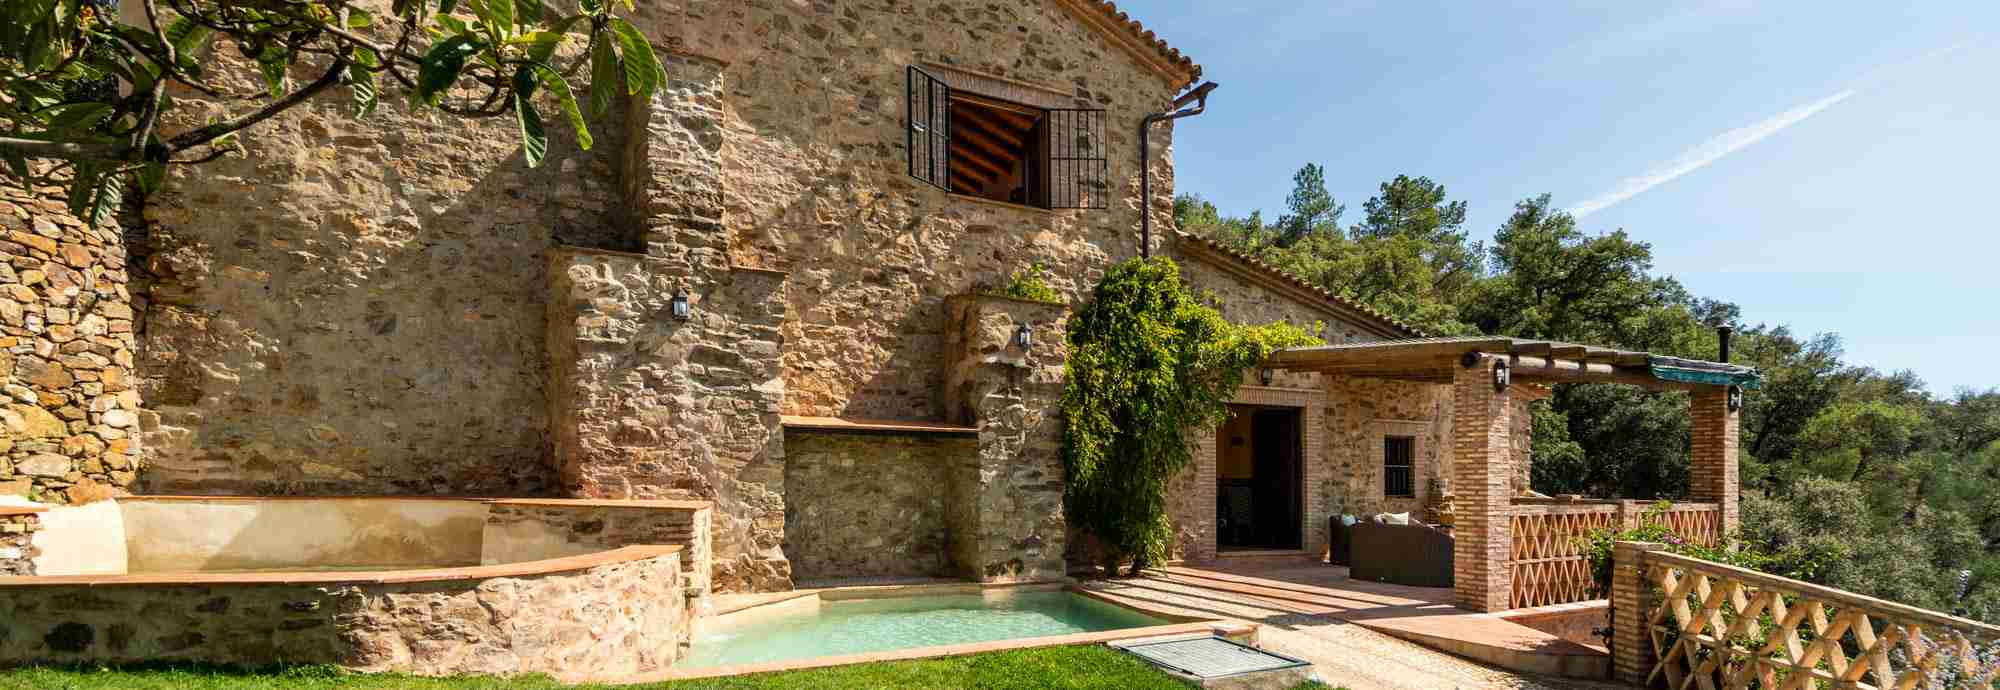 Immaculate restored mill surrounded by nature close to traditional village